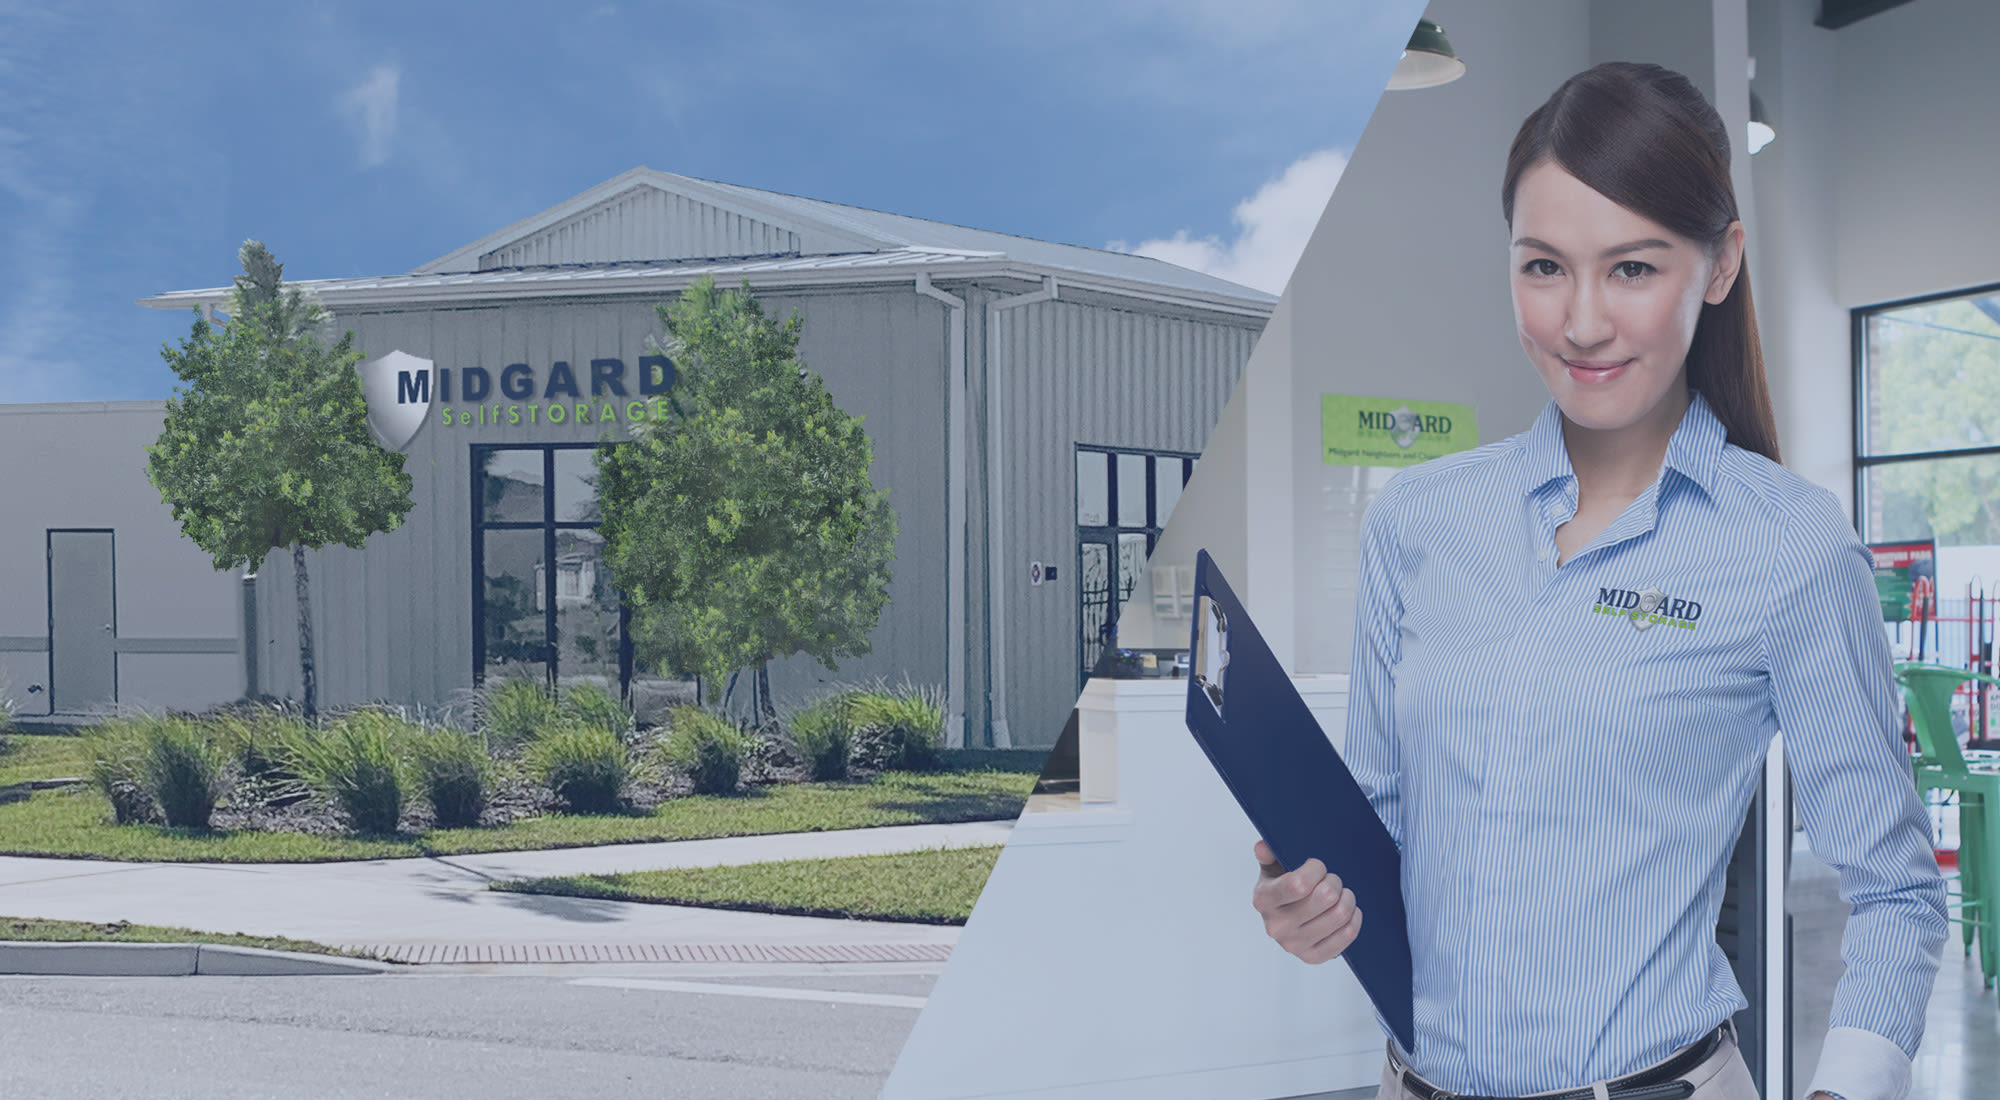 Midgard Self Storage in Jacksonville, Florida